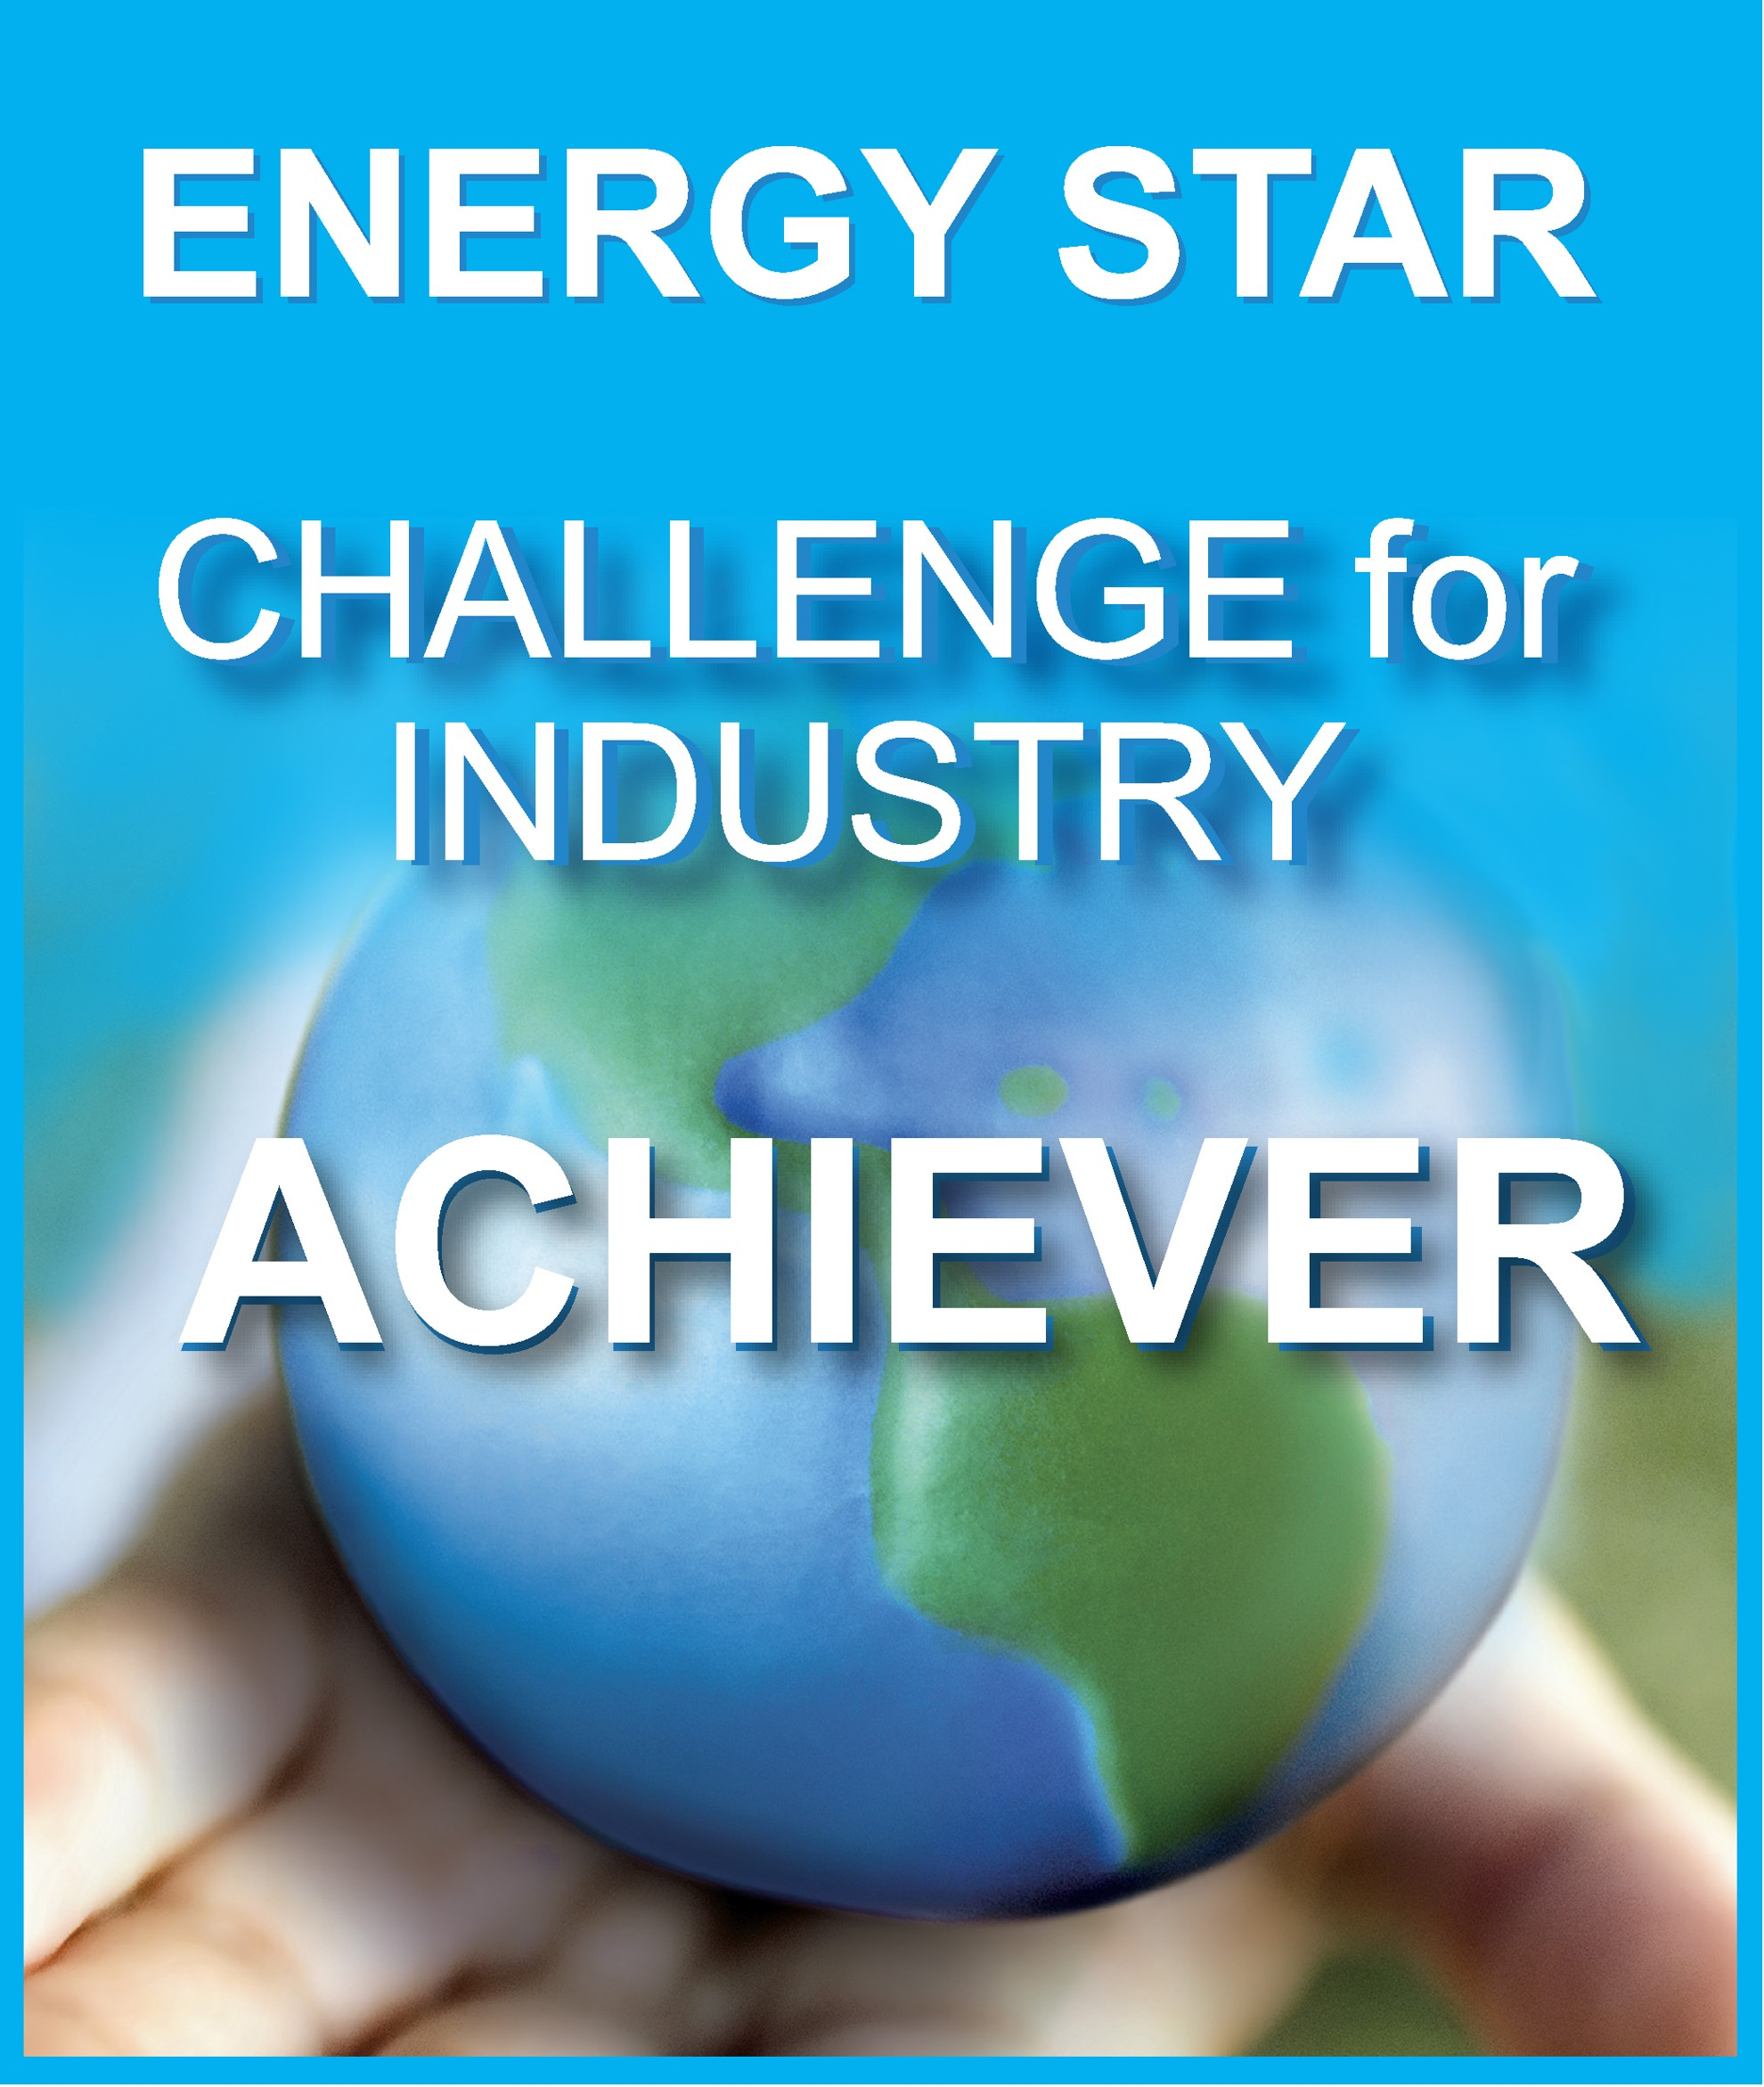 GM Energy Star